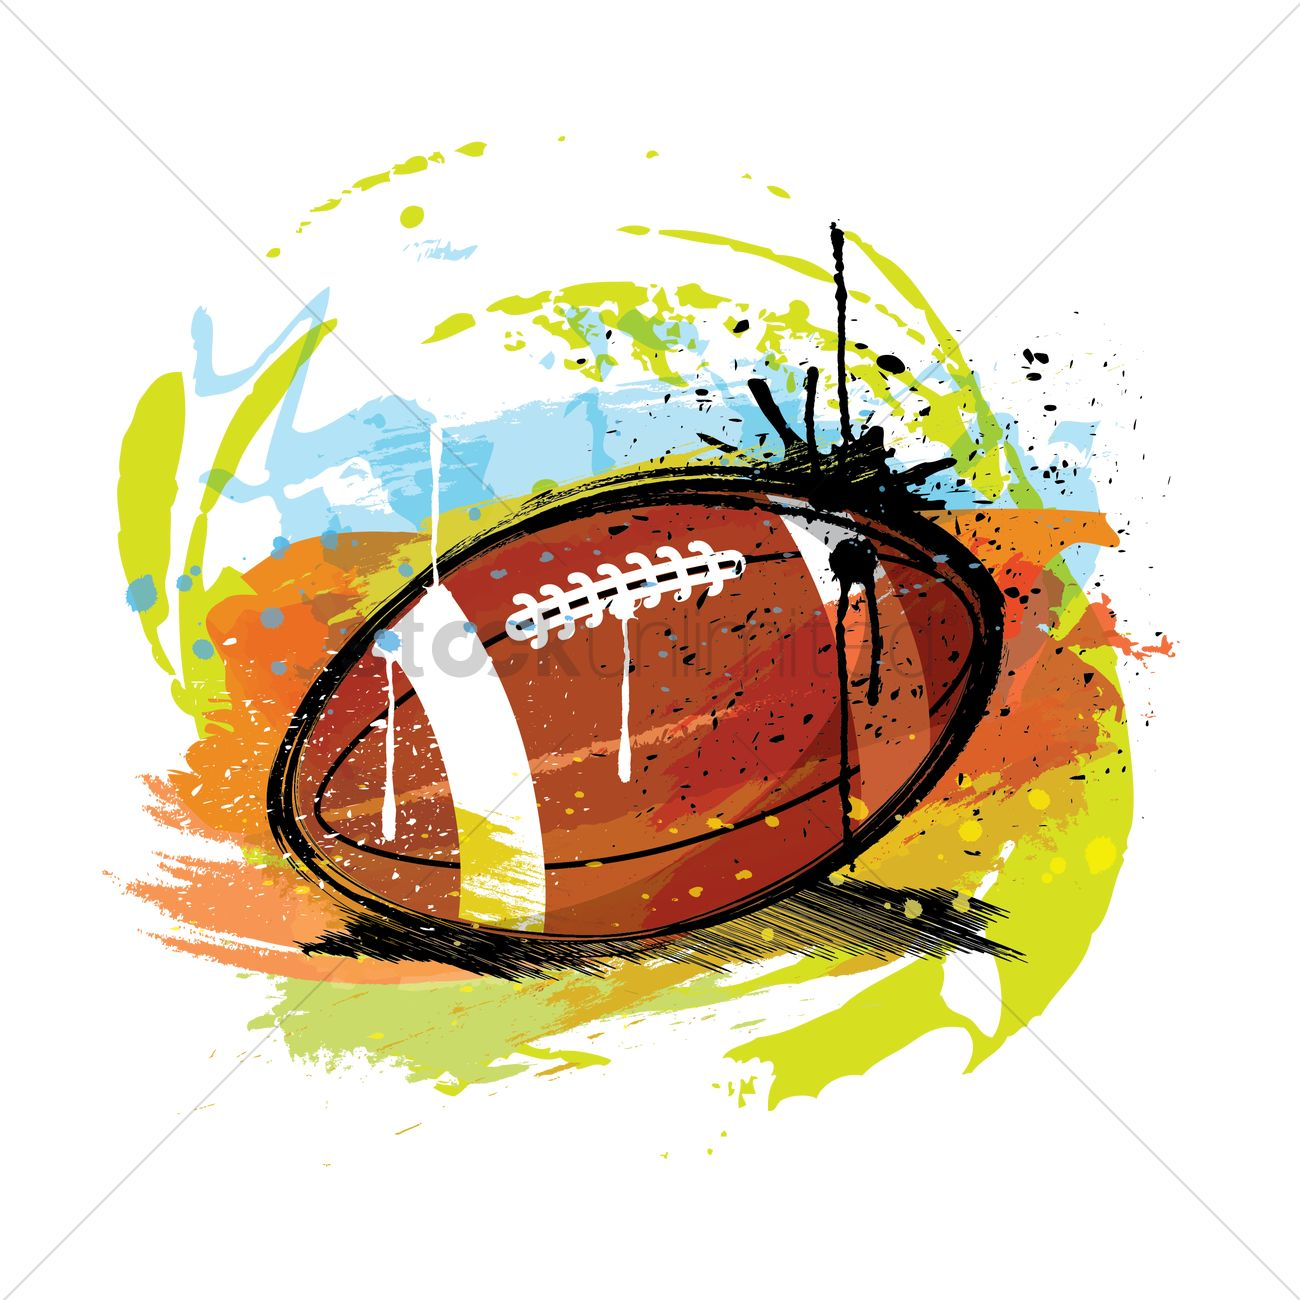 Abstract american football Vector Image.